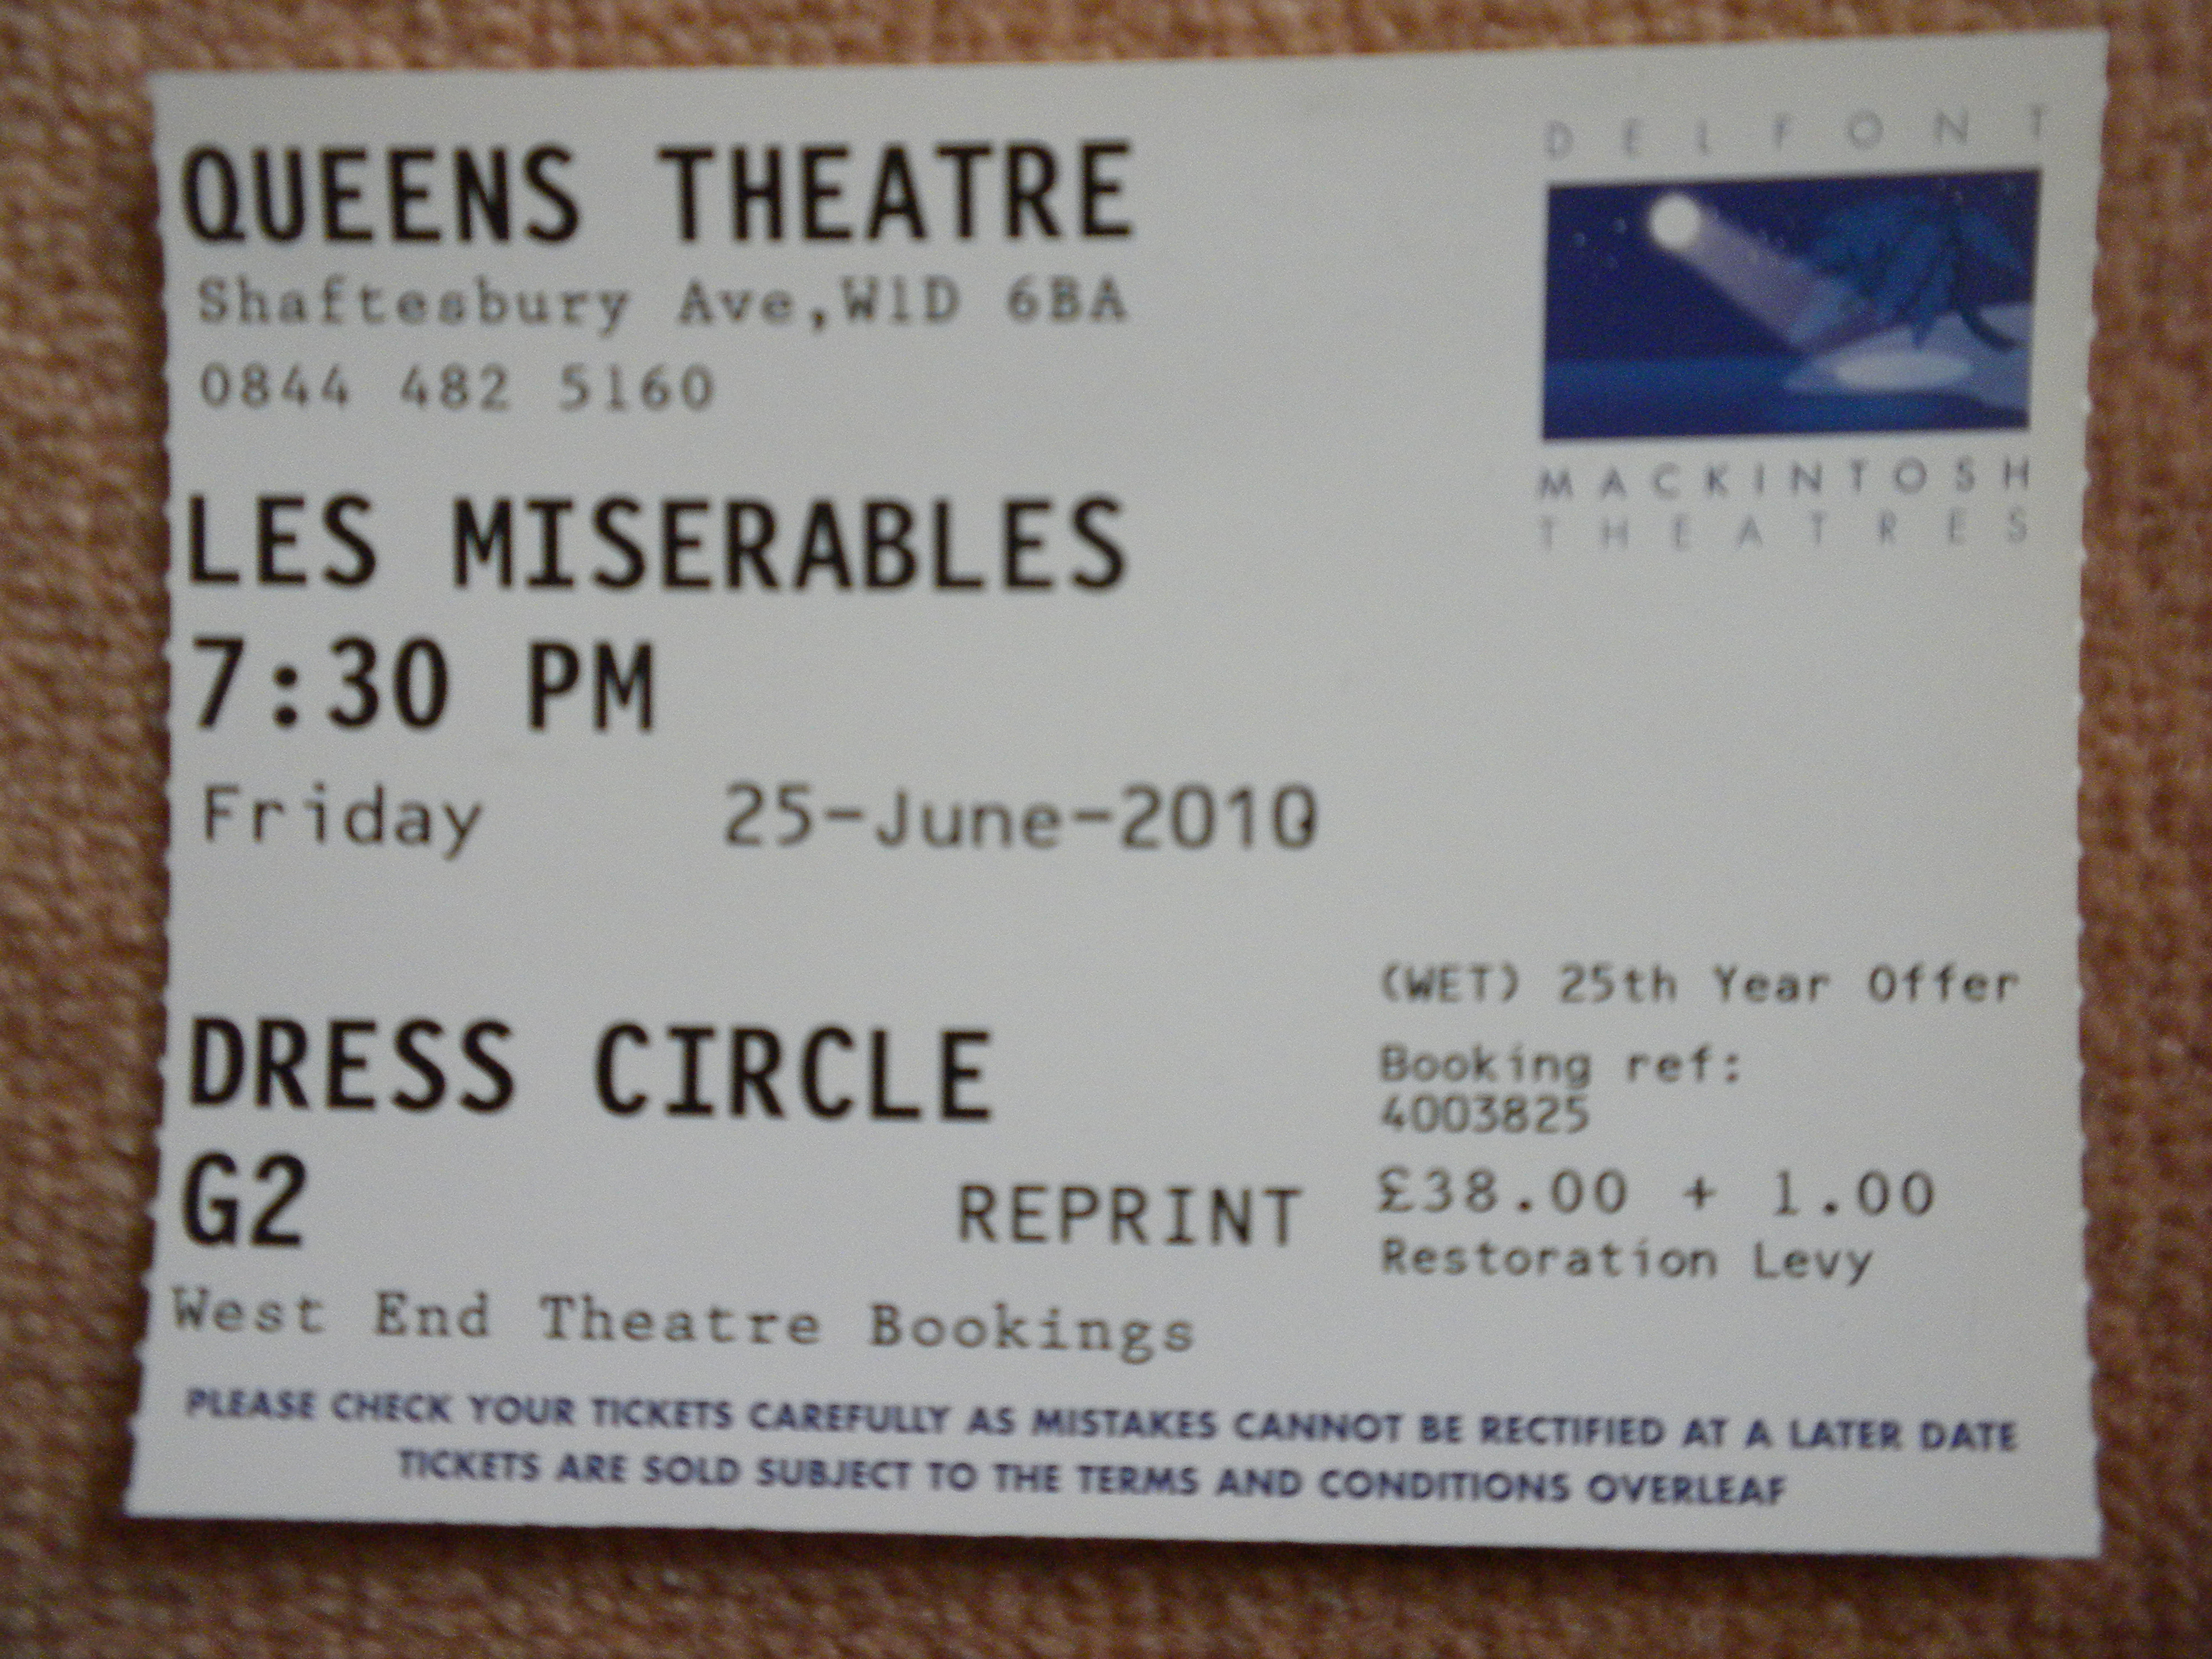 Hotel and les miserables ticket deals toronto